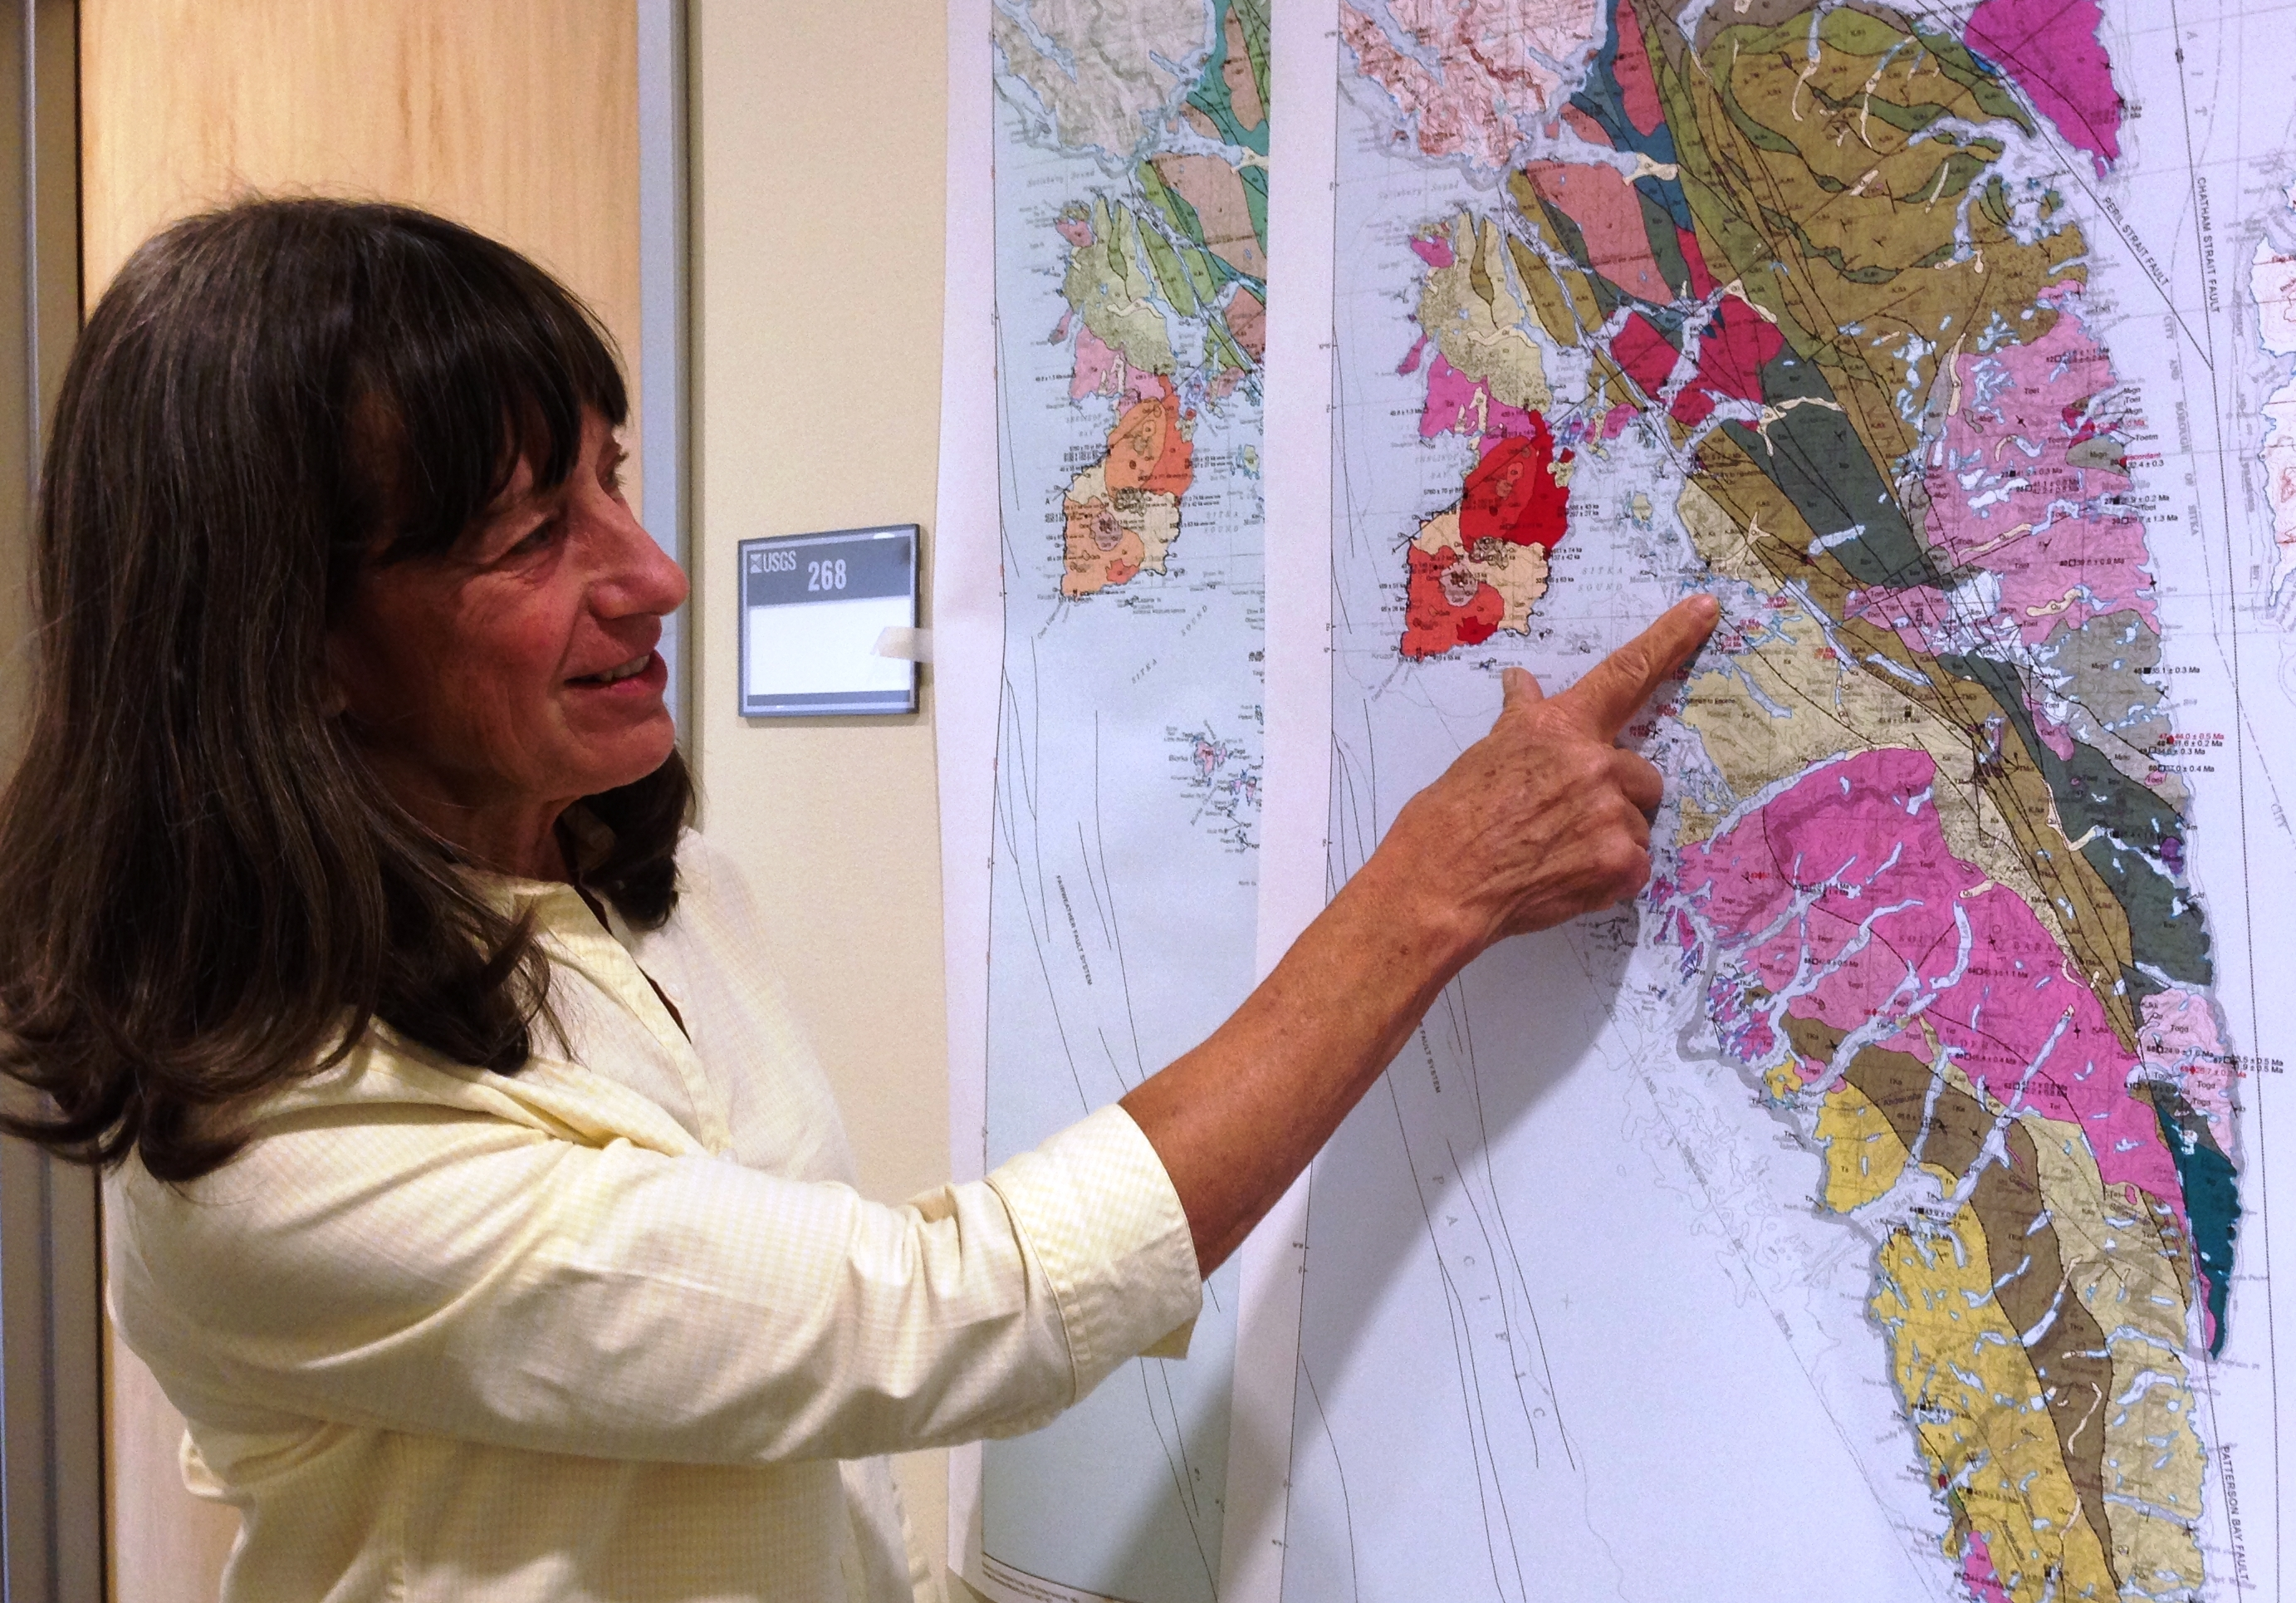 Susan Karl points to fauls shown on a new geologic map of Baranof Island, in Southeast Alaska. It reflects the discovery that the island's bedrock is different from that of other parts of the region. (Ed Schoenfeld/CoastAlaska News)